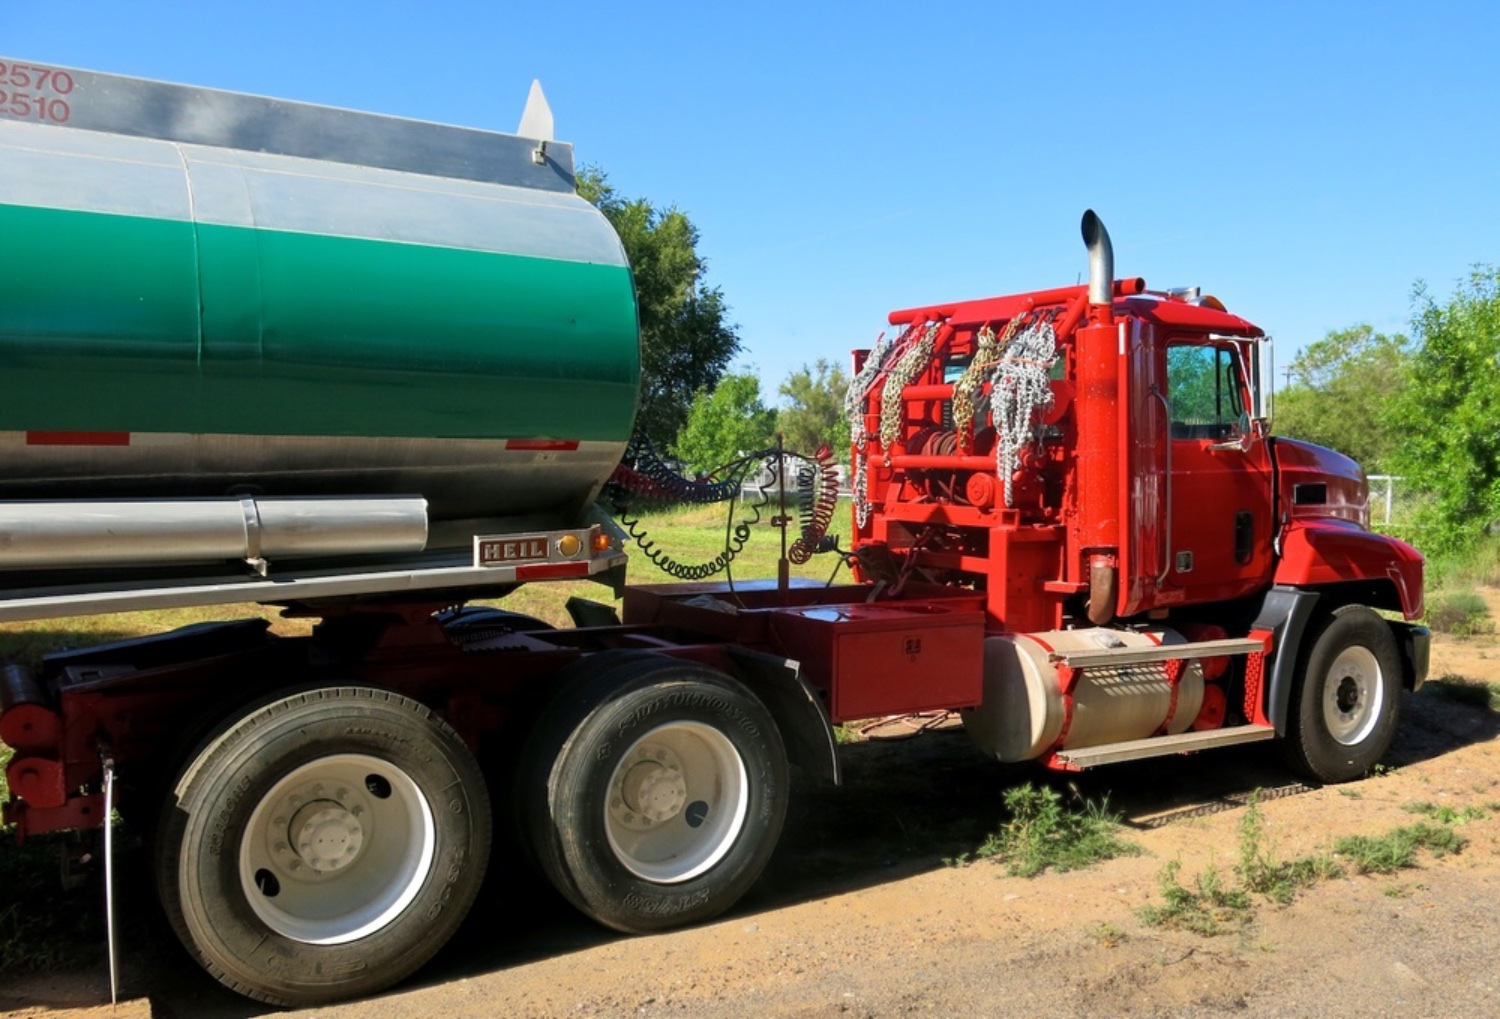 WaterTanker 1500 6479.jpg